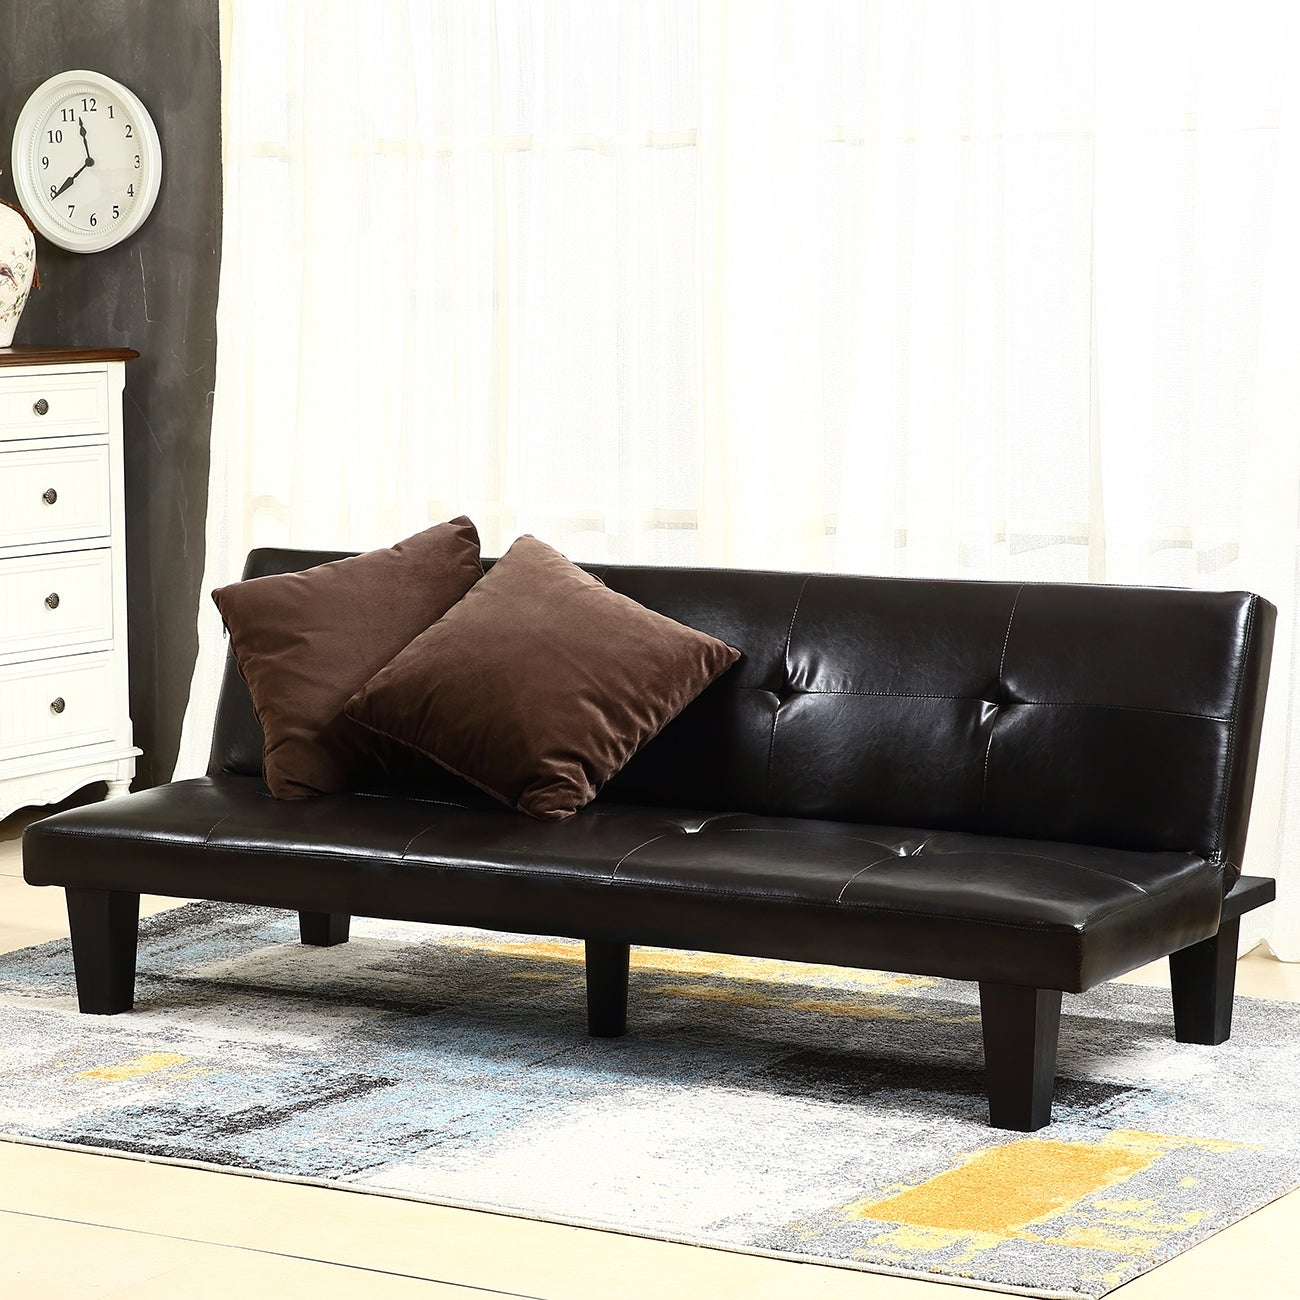 Belleze Convertible Sofa Faux Leather Futon Bed Sleeper Couch W 2 Pillow Brown Free Shipping Today Com 15960092